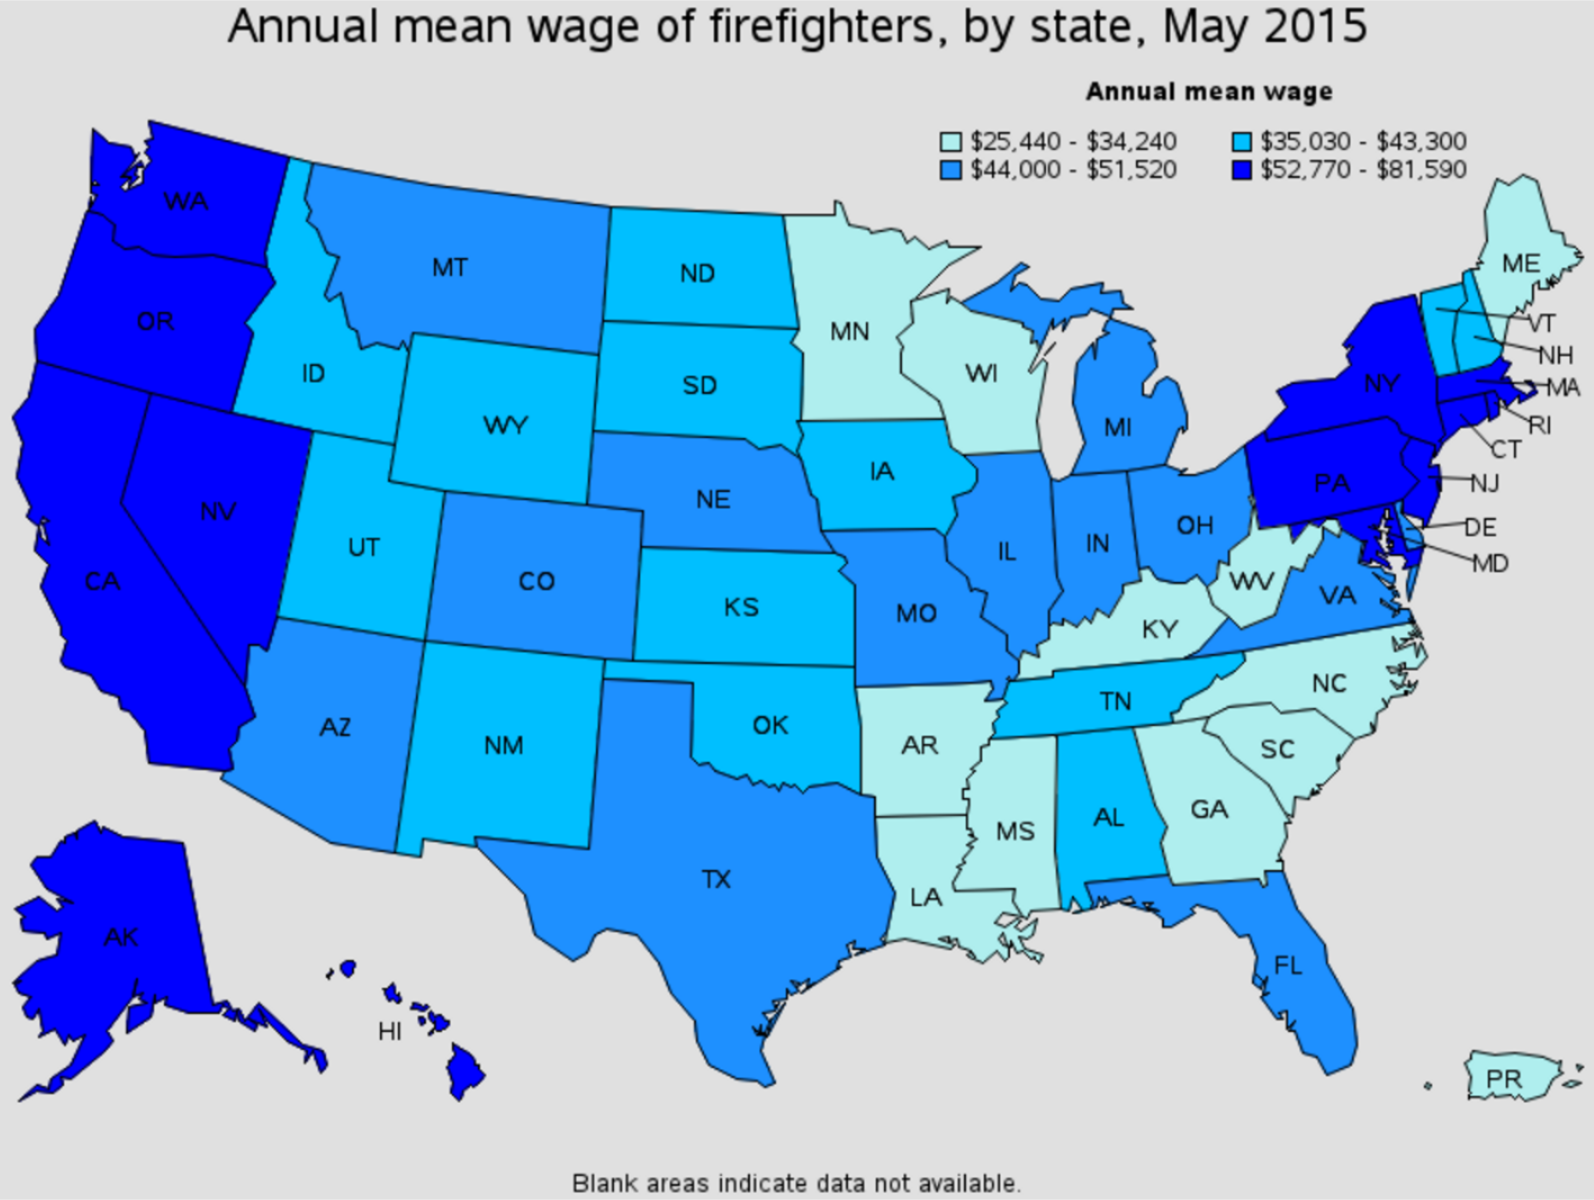 firefighter average salary by state Springfield Illinois